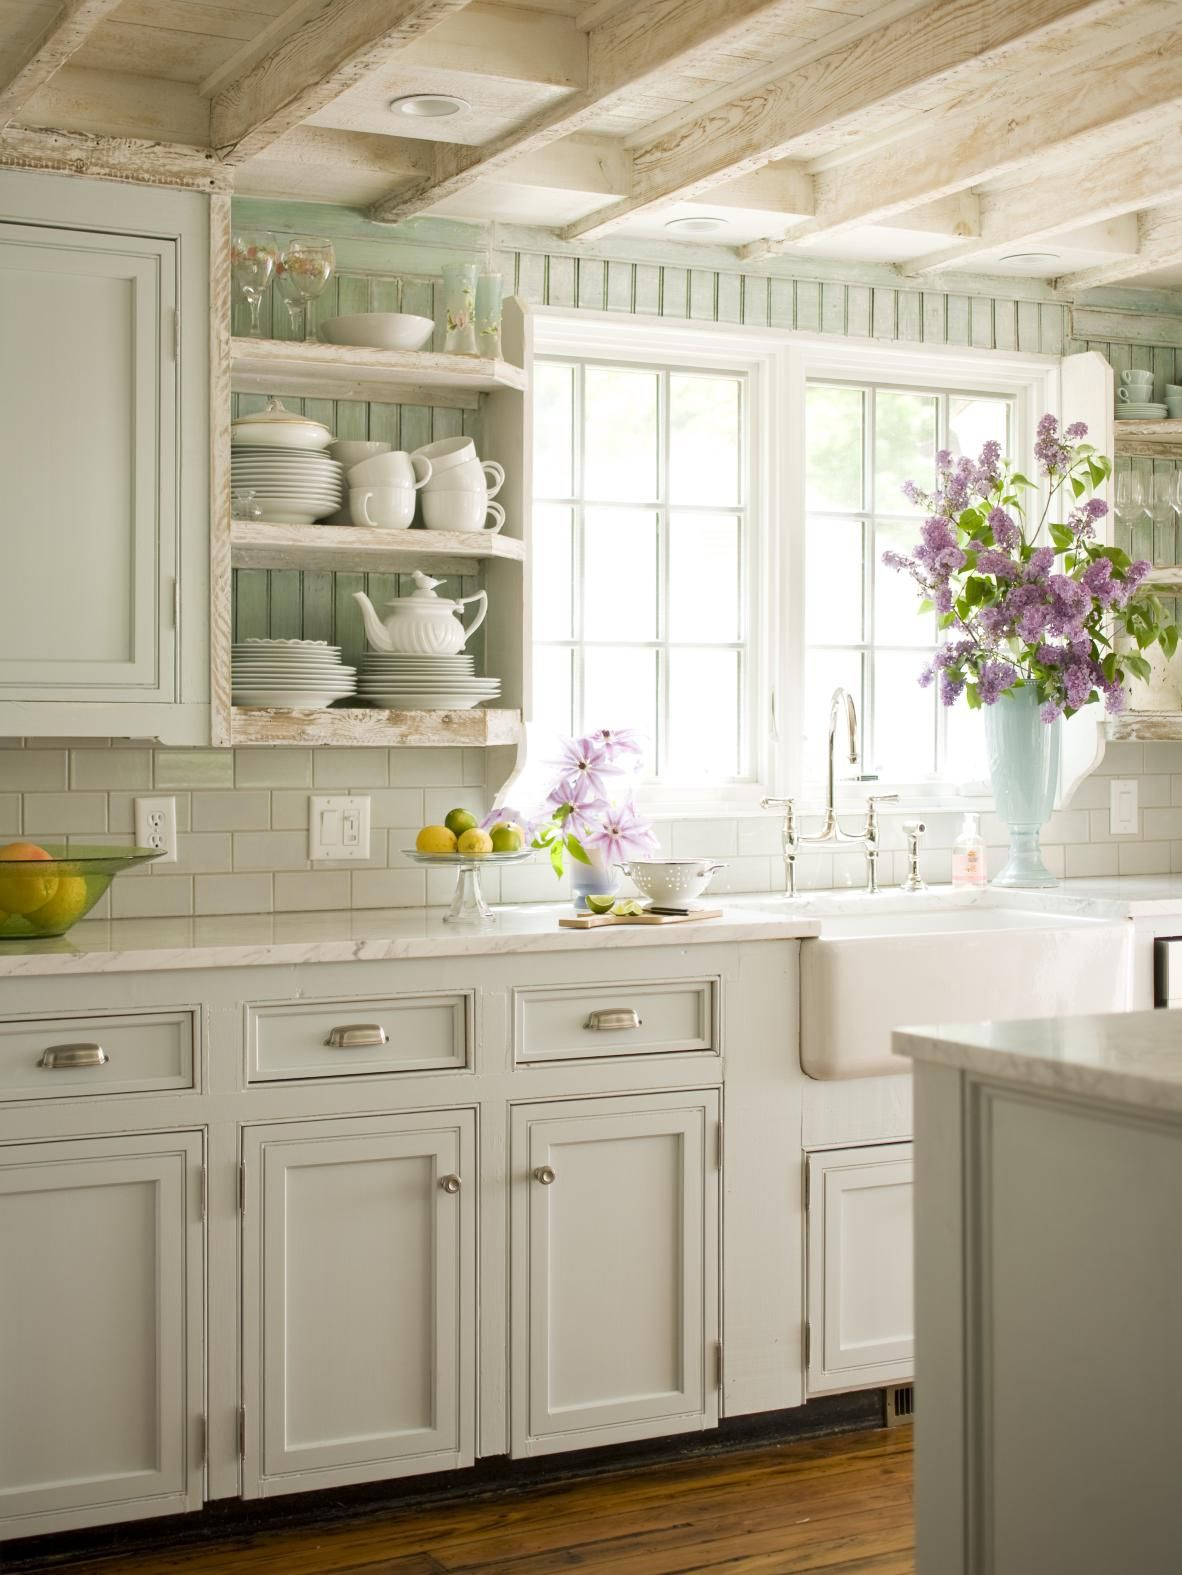 10 ways to get farmhouse style in your kitchen cottage kitchens 10 ways to get farmhouse style in your kitchen open shelvescorner